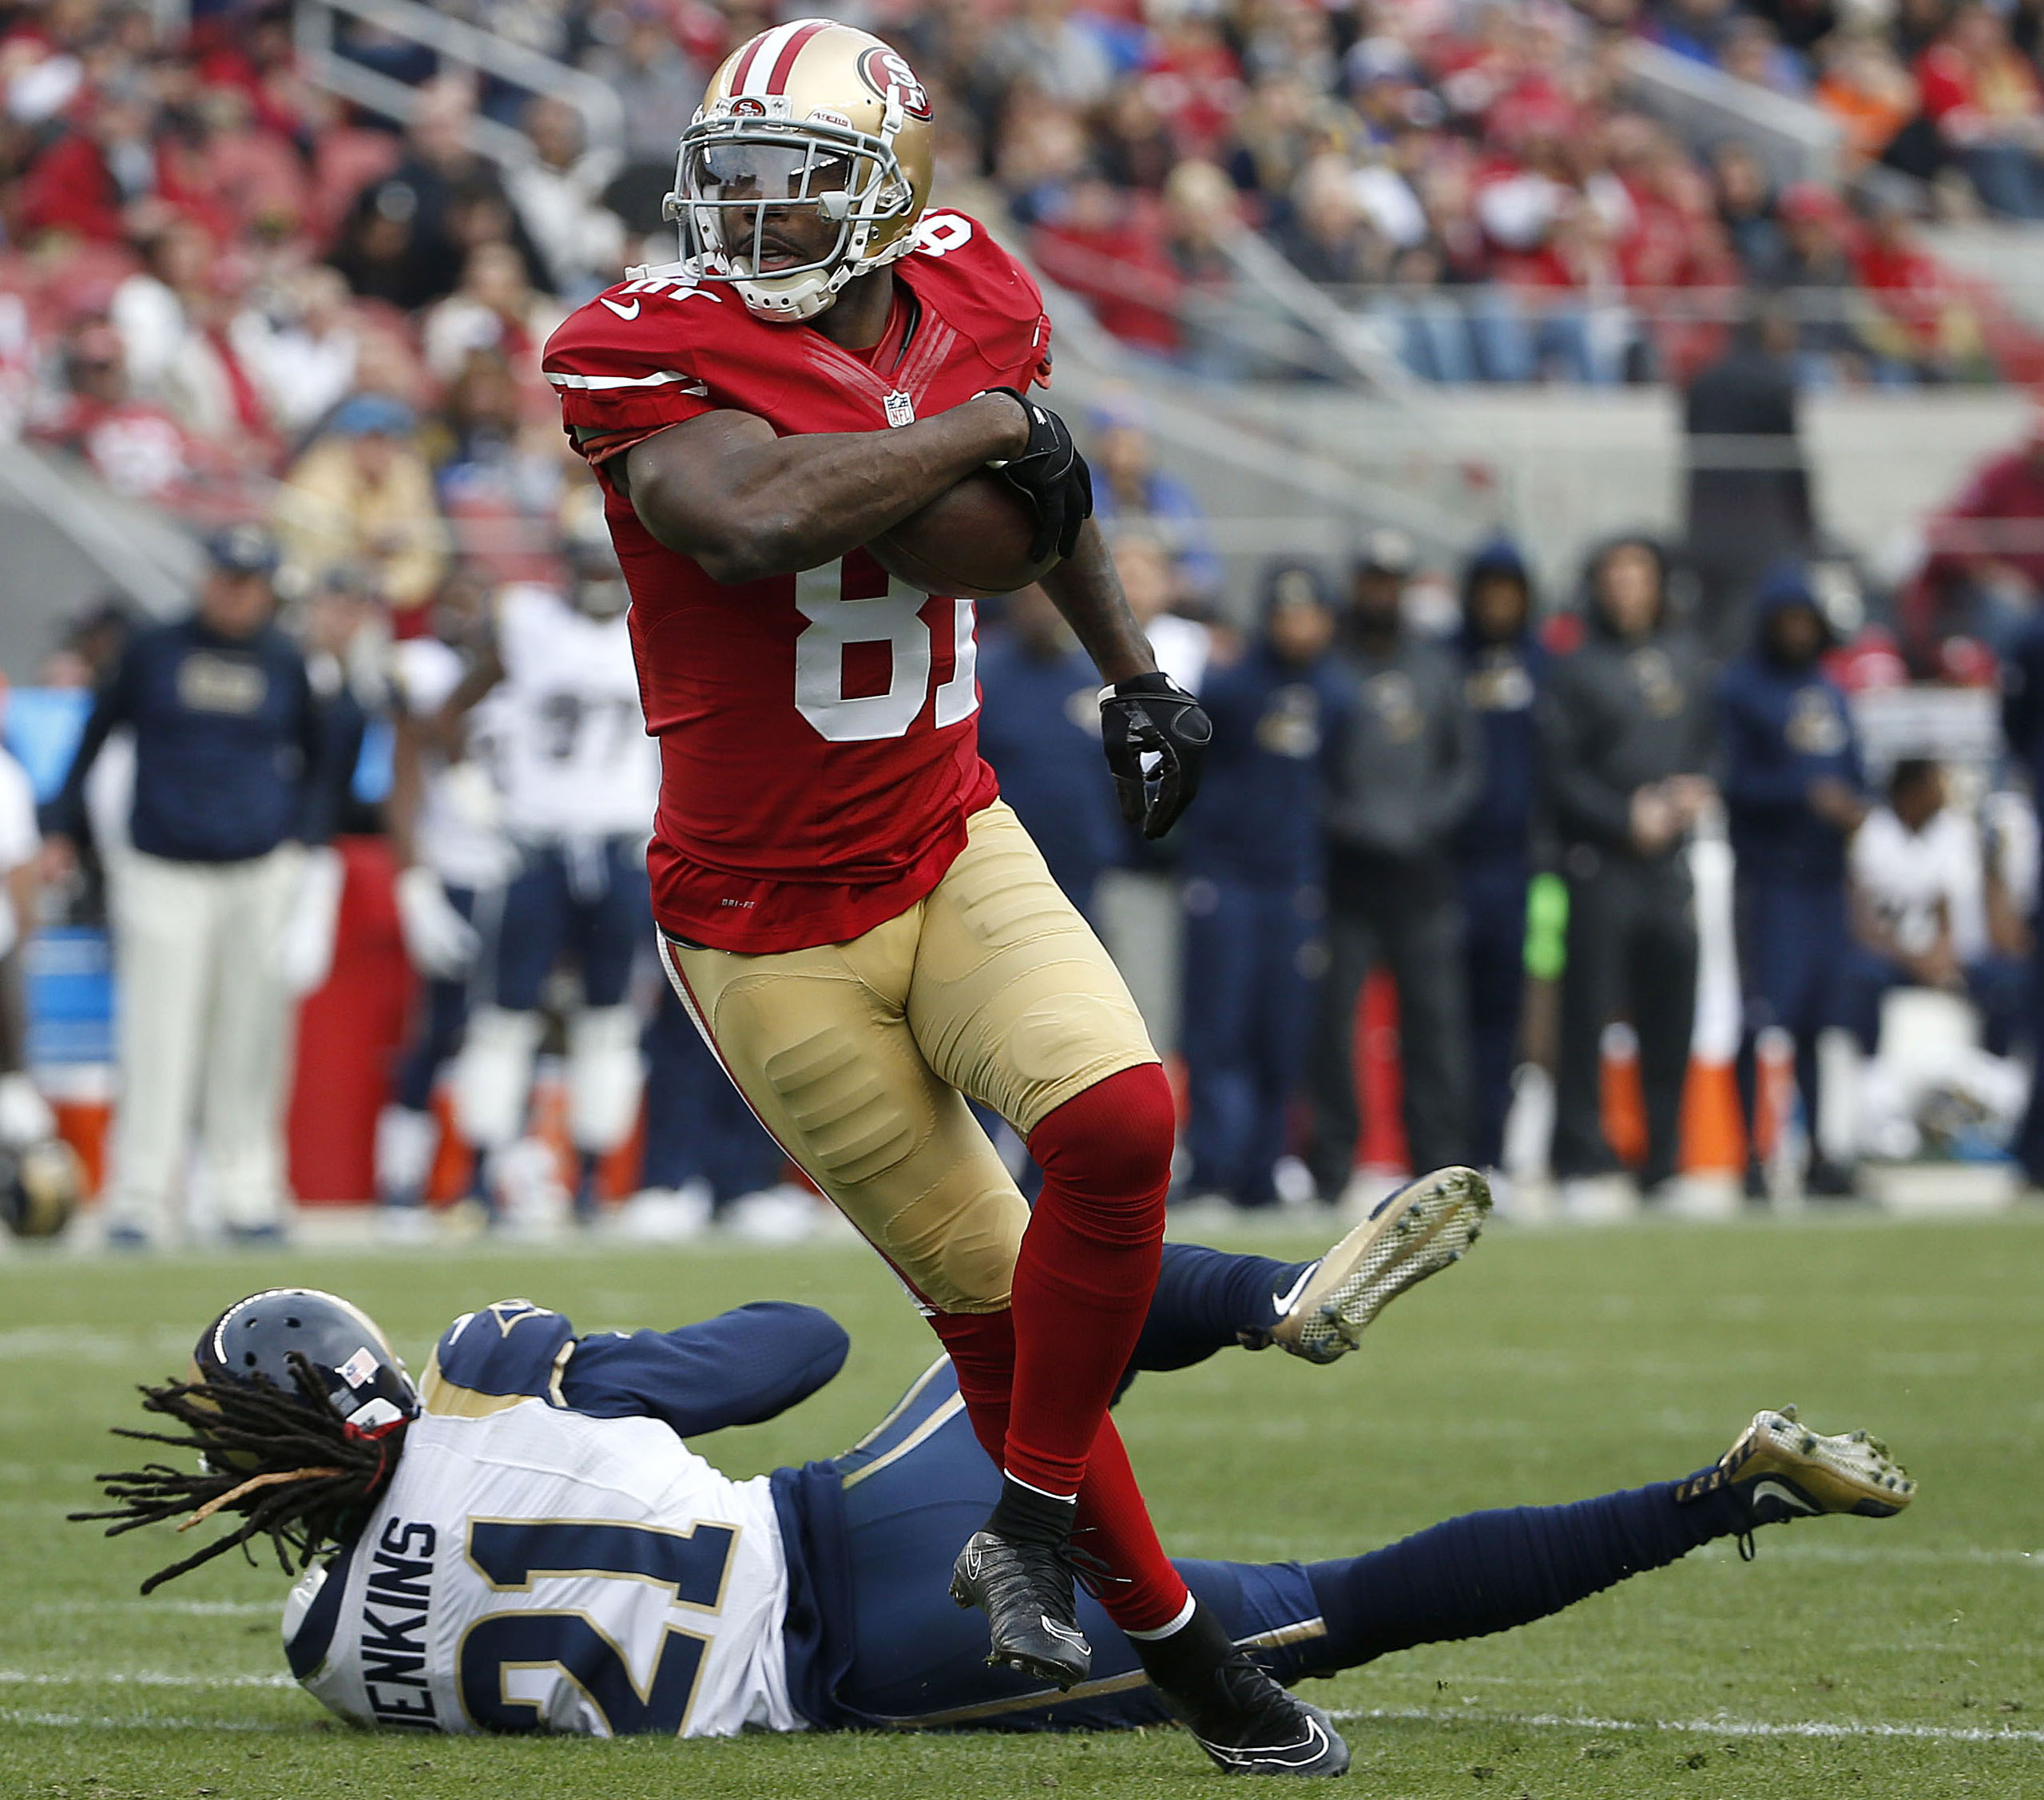 File-This Jan. 3, 2016, file photo shows San Francisco 49ers wide receiver Anquan Boldin (81) catching a touchdown pass against St. Louis Rams cornerback Janoris Jenkins (21) during the first half of an NFL football game in Santa Clara, Calif. The Detroit